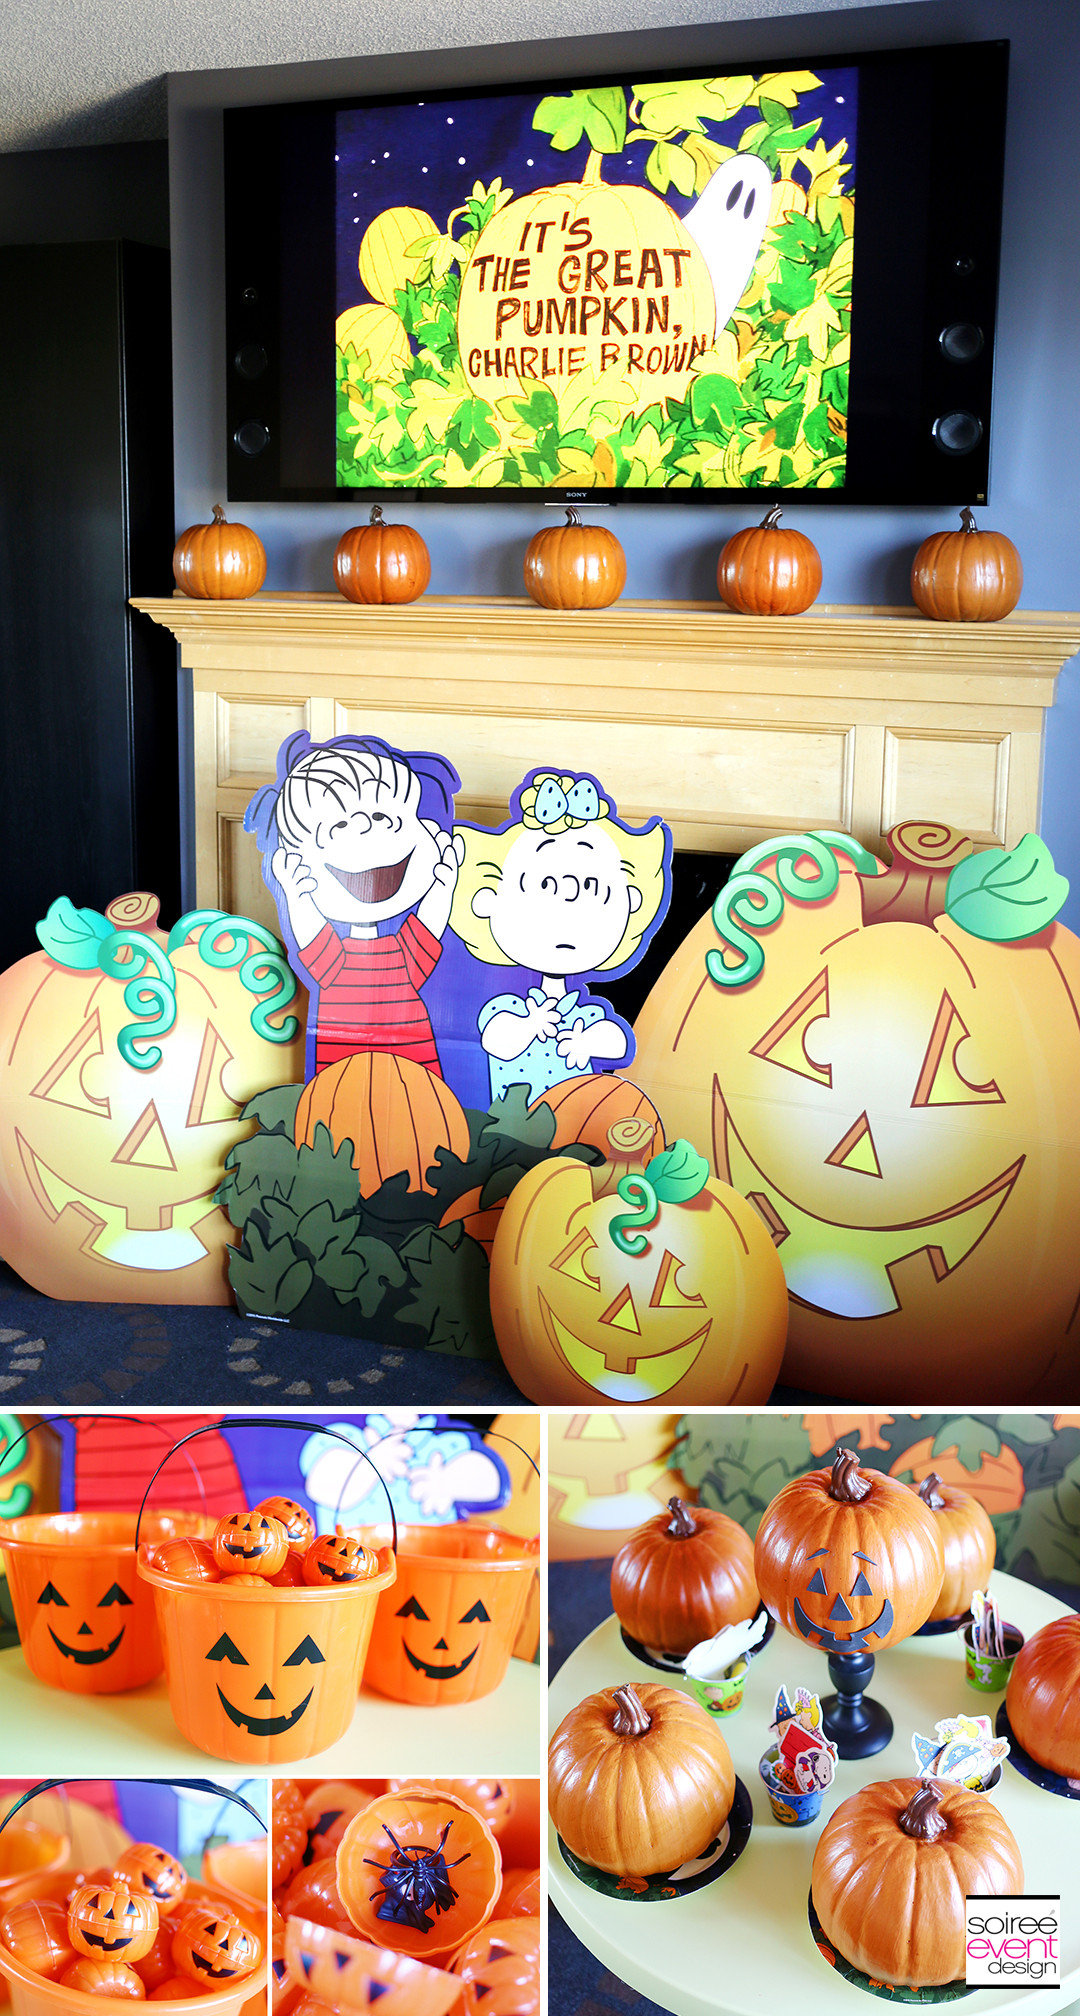 Great Halloween Party Ideas  It s The Great Pumpkin Charlie Brown Halloween Party